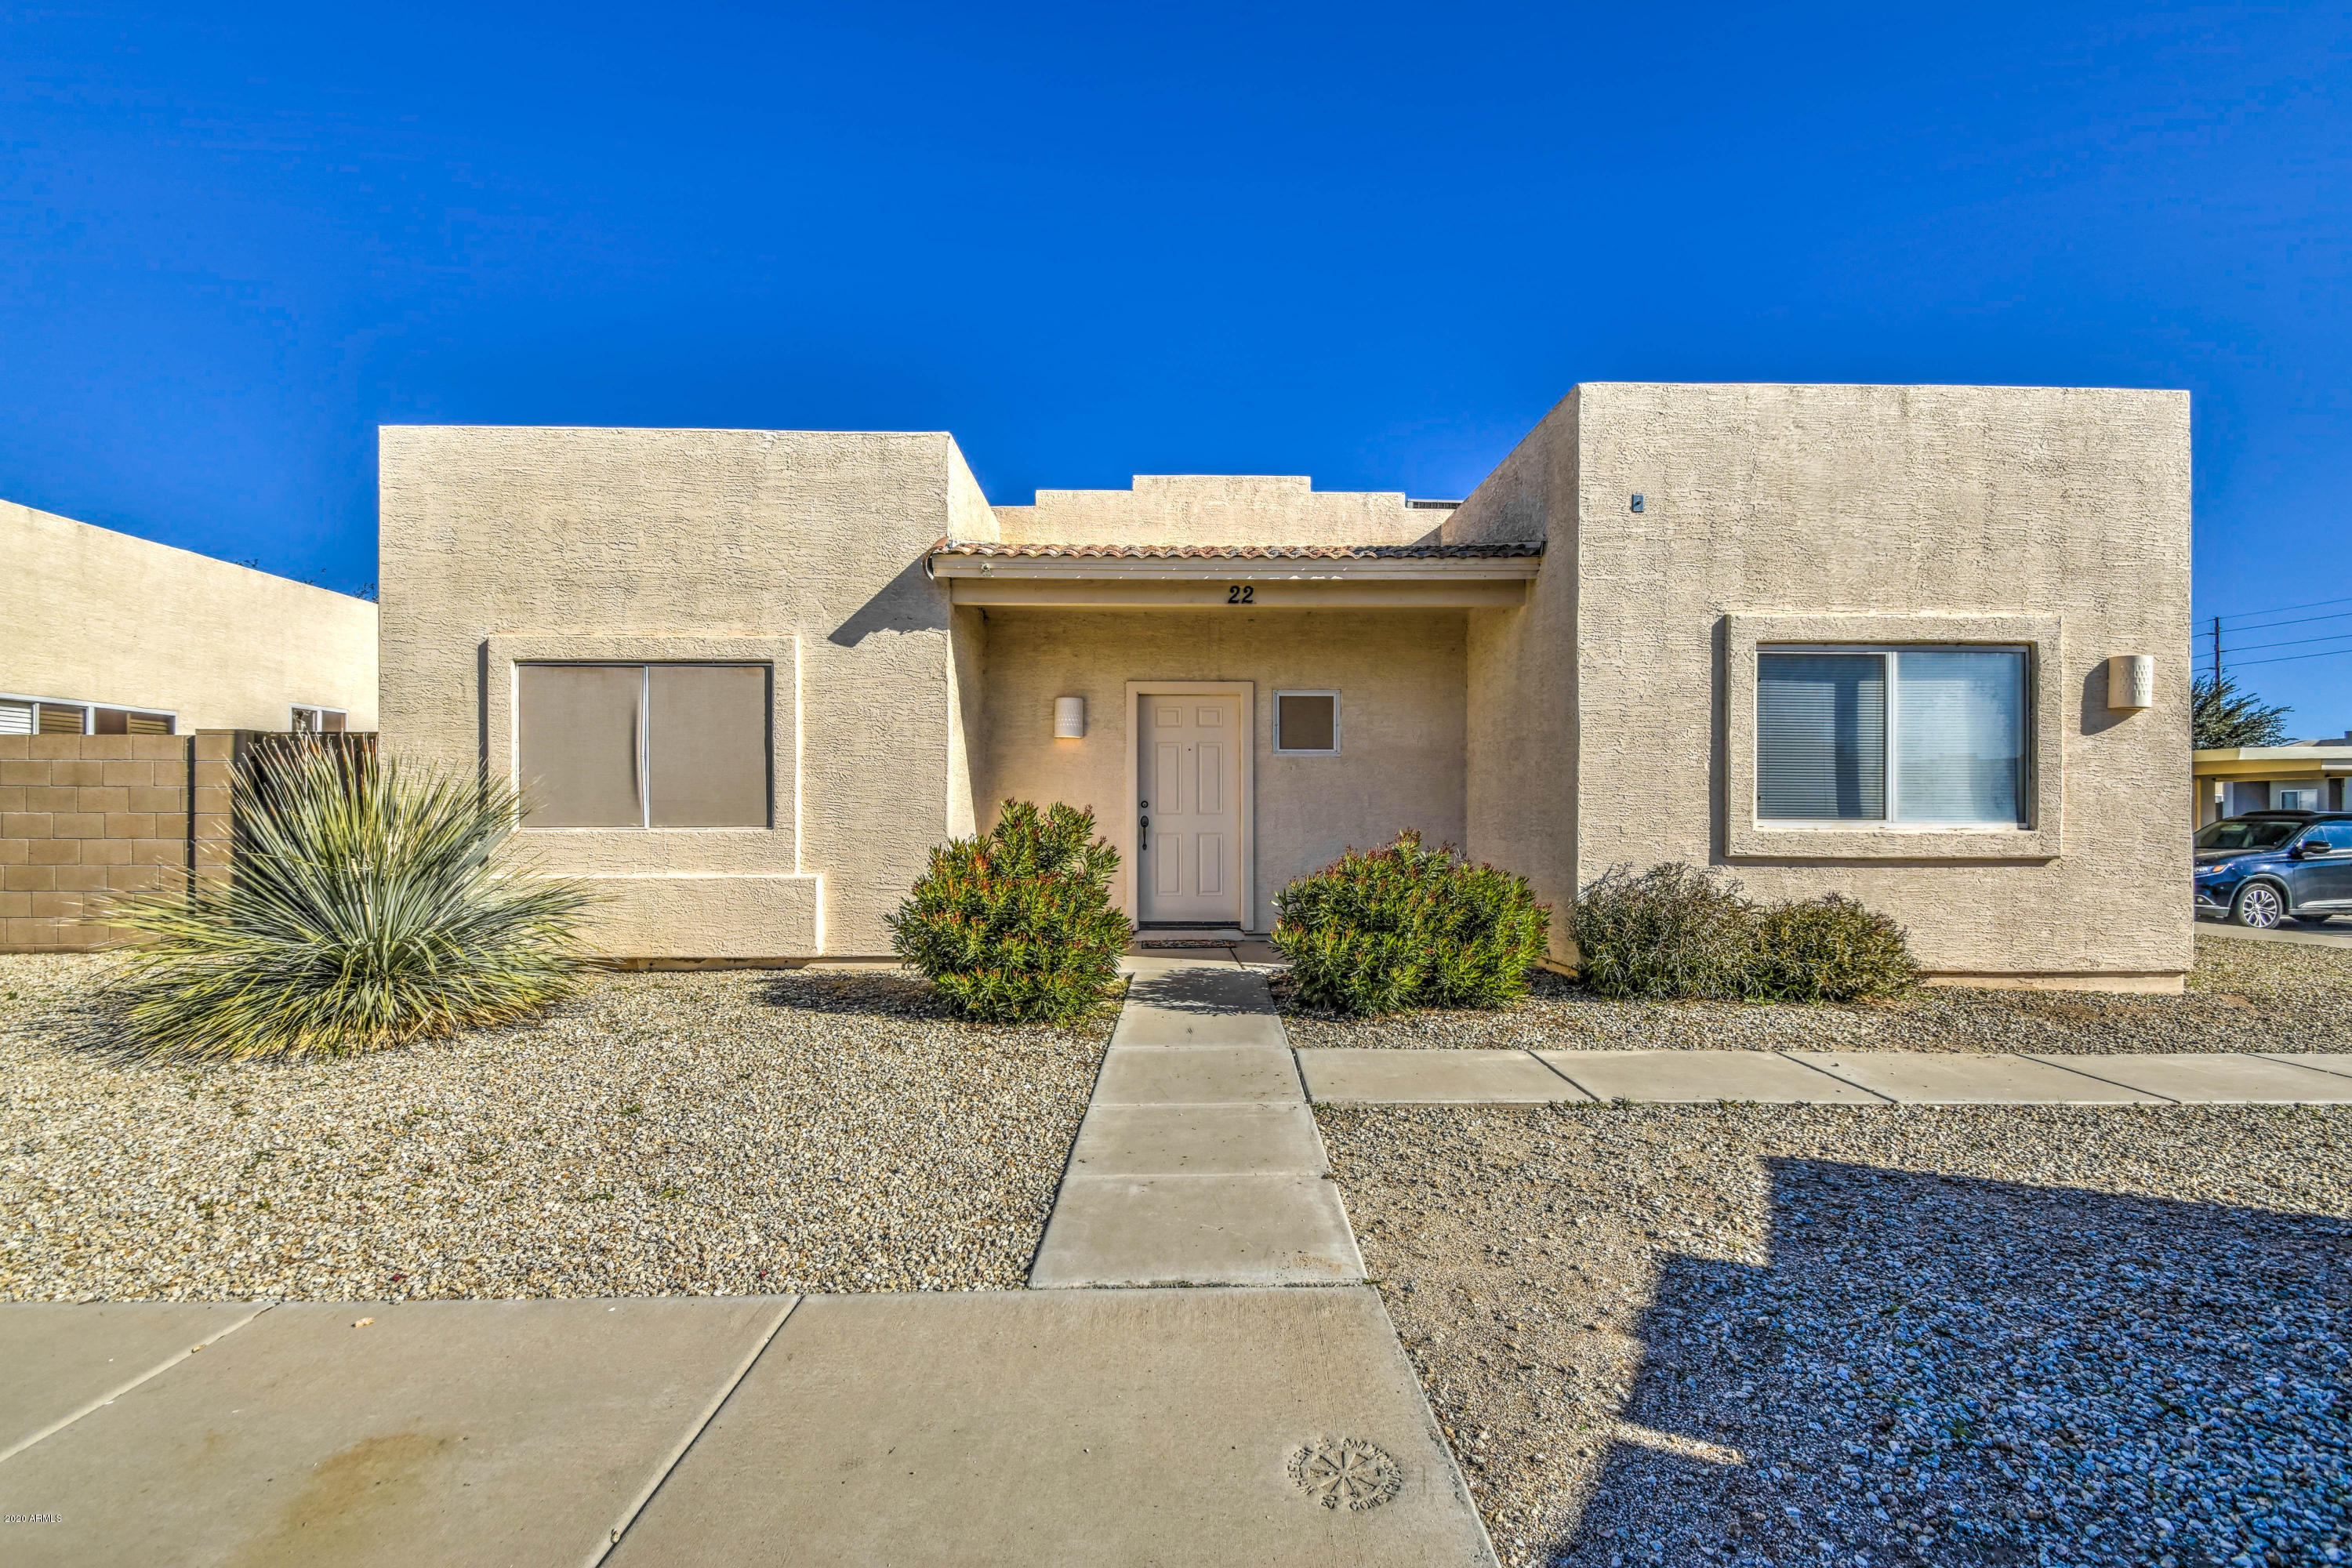 Photo of 2300 E MAGMA Road #22, San Tan Valley, AZ 85143